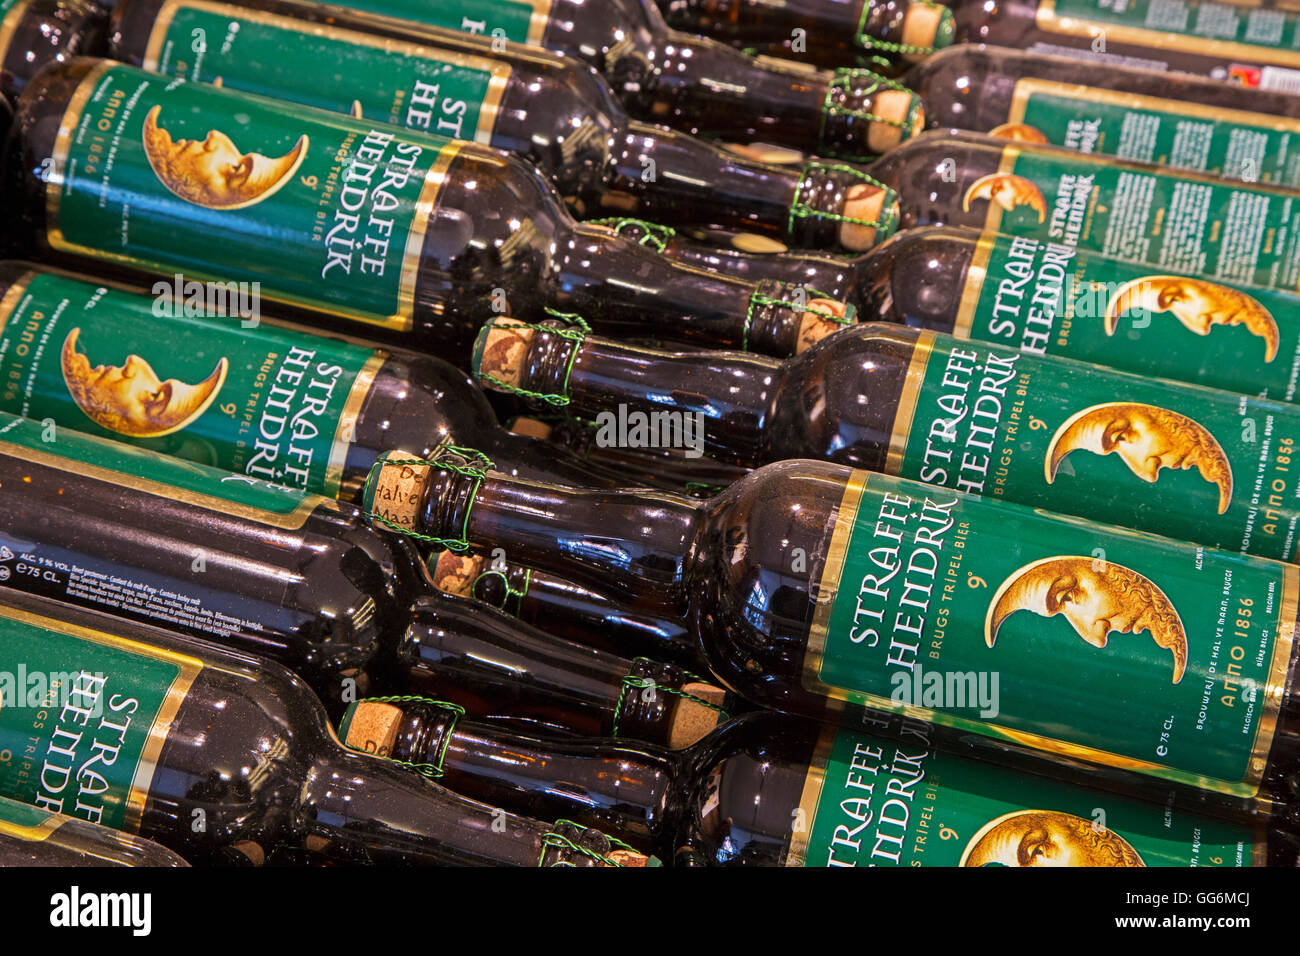 Straffe Hendrik beer bottles at the Brouwerij Henri Maes, Belgian brewery at Bruges, Belgium - Stock Image